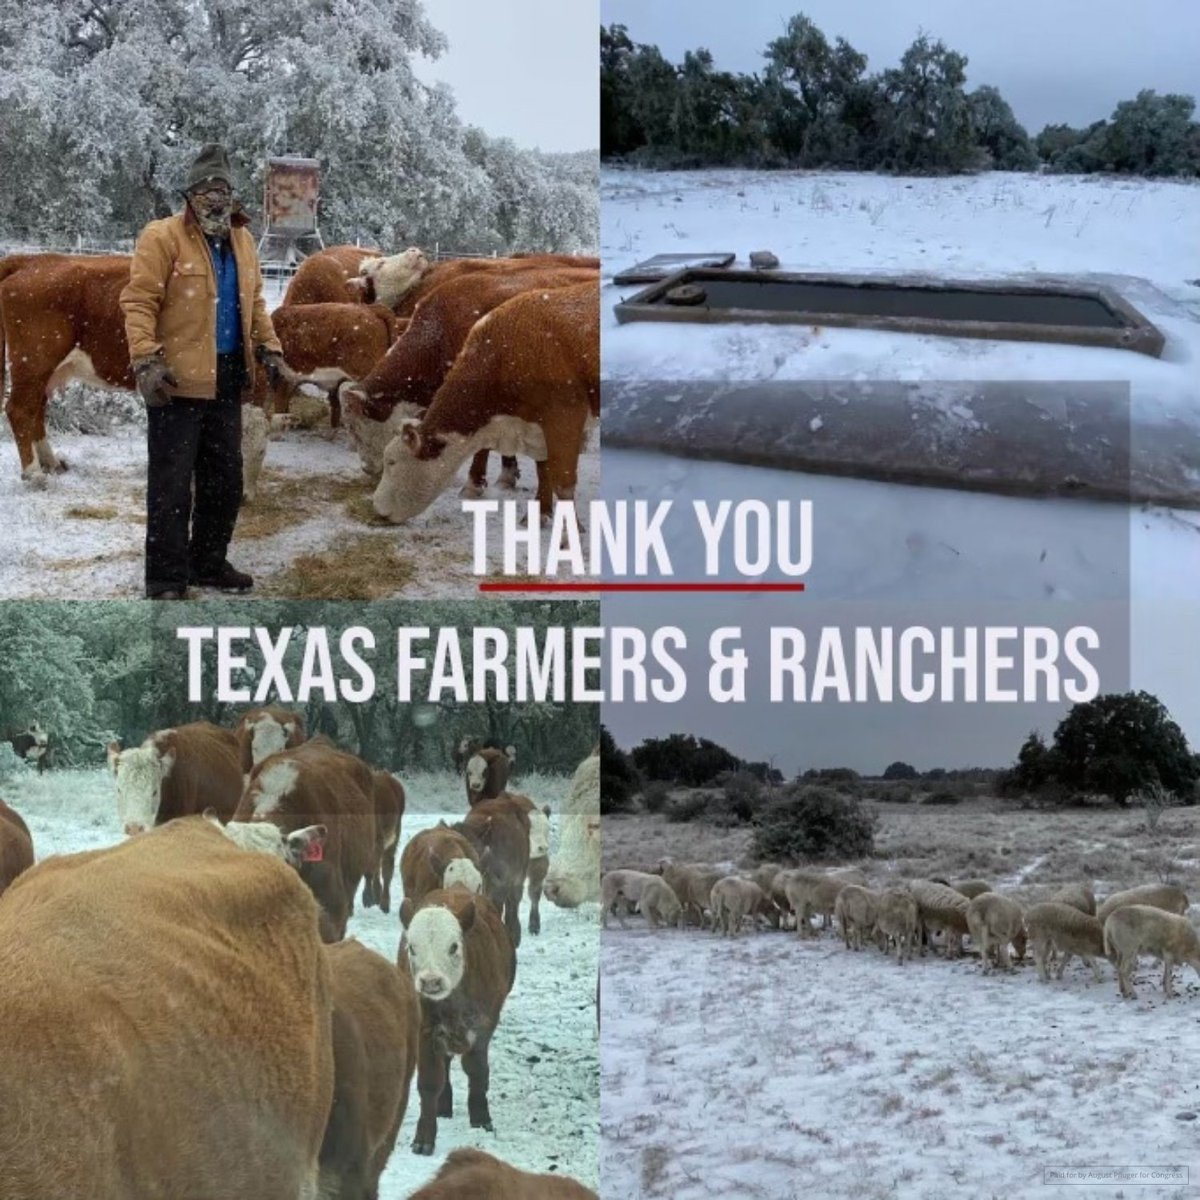 Farmers and ranchers never rest. It's a 24/7 job that only 2% of our country knows anything about—but ALL Americans eat. Oh by the way...food DOES NOT grow on shelves! Thank you to all the farmers and ranchers across Texas who are braving these extreme weather conditions.